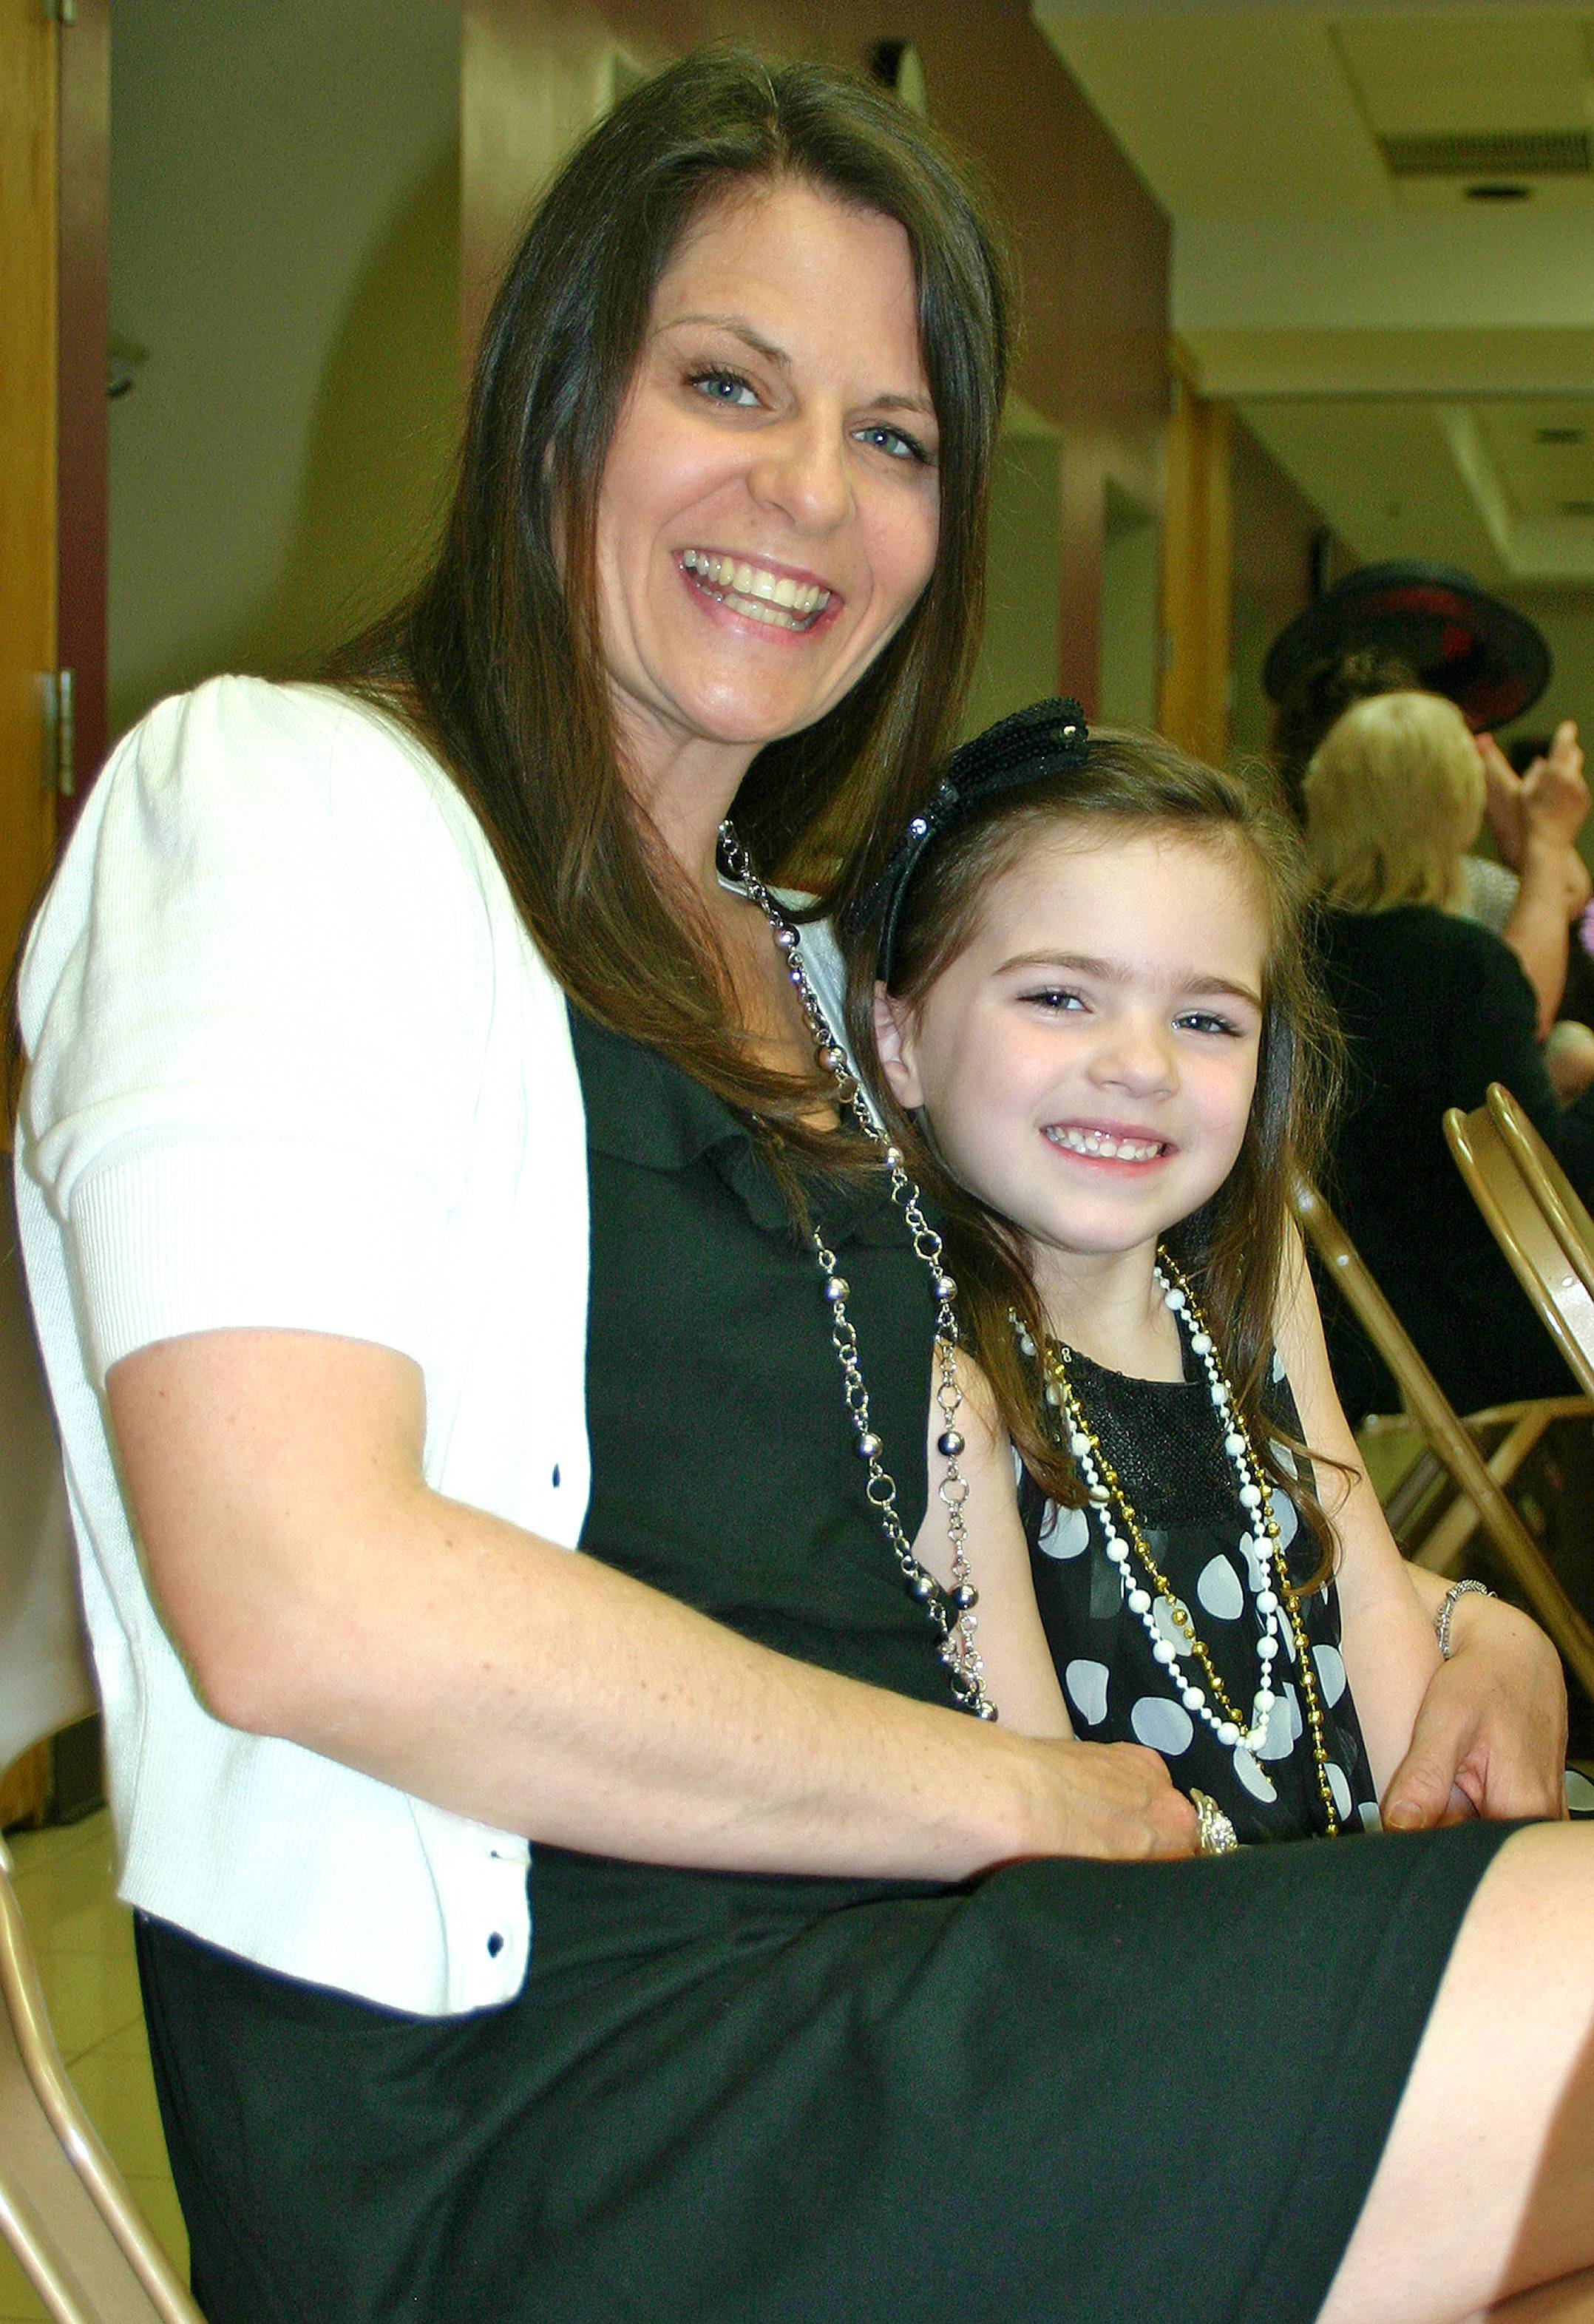 Samantha Noto, 4, and her Mom, Amy, are all smiles at the 8th annual Des Plaines Park District Mother Daughter Tea on April 14, 2012.